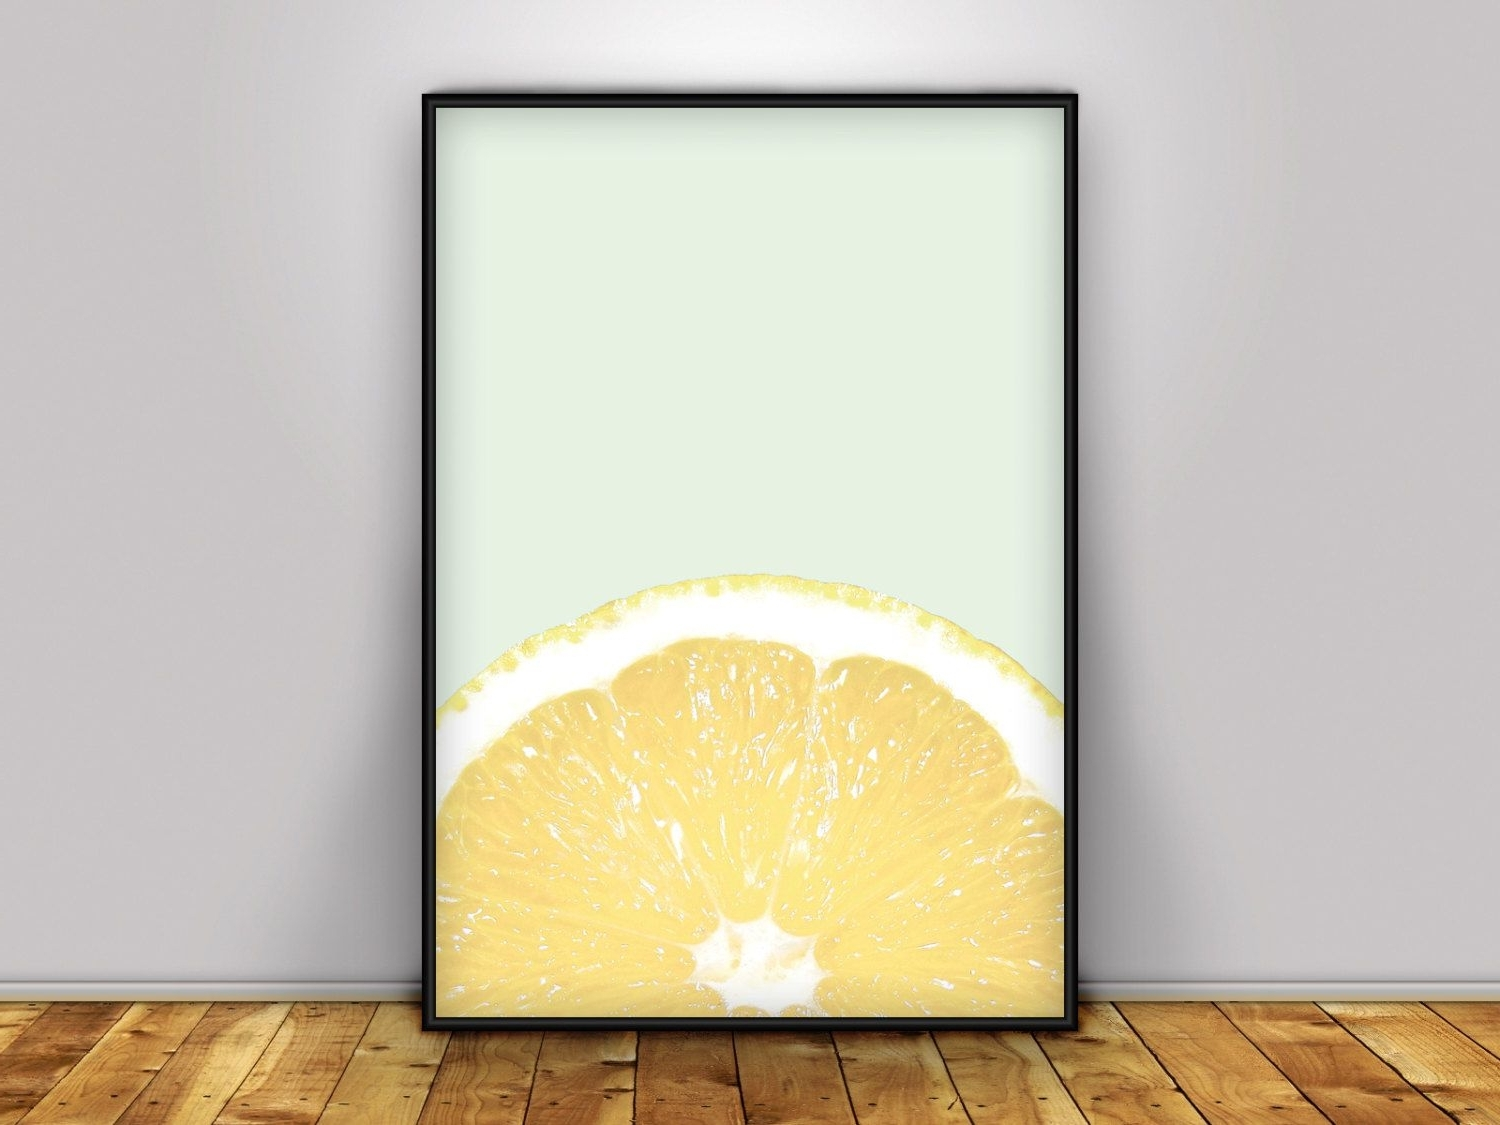 Lemon Wall Art, Wall Art, Lemon Print, Kitchen Art, Citrus Print Inside Newest Lemon Wall Art (Gallery 6 of 20)